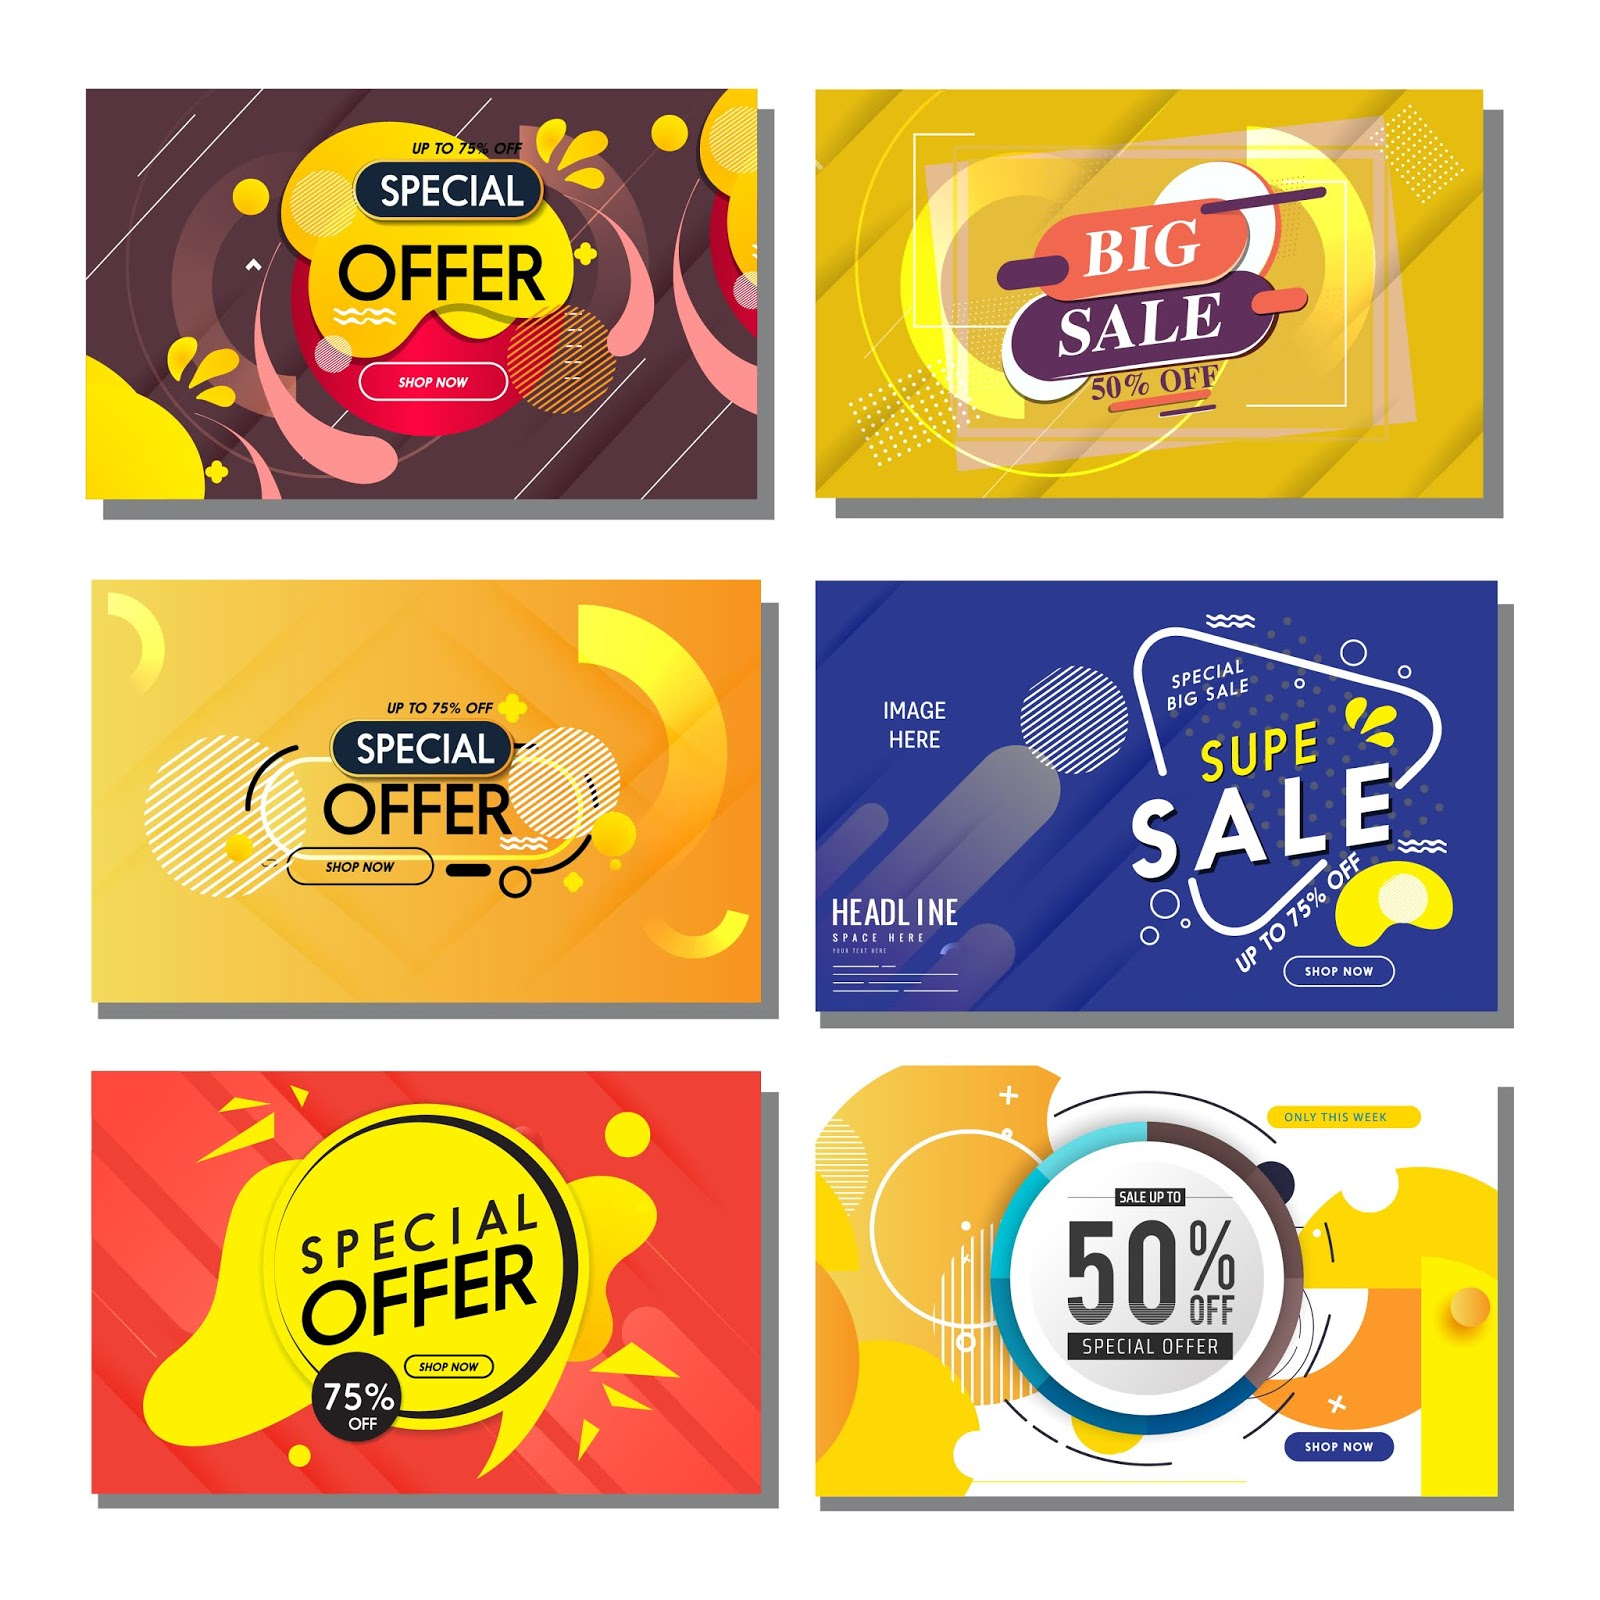 Sale Banners Templates Modern Flat Abstract Geometric